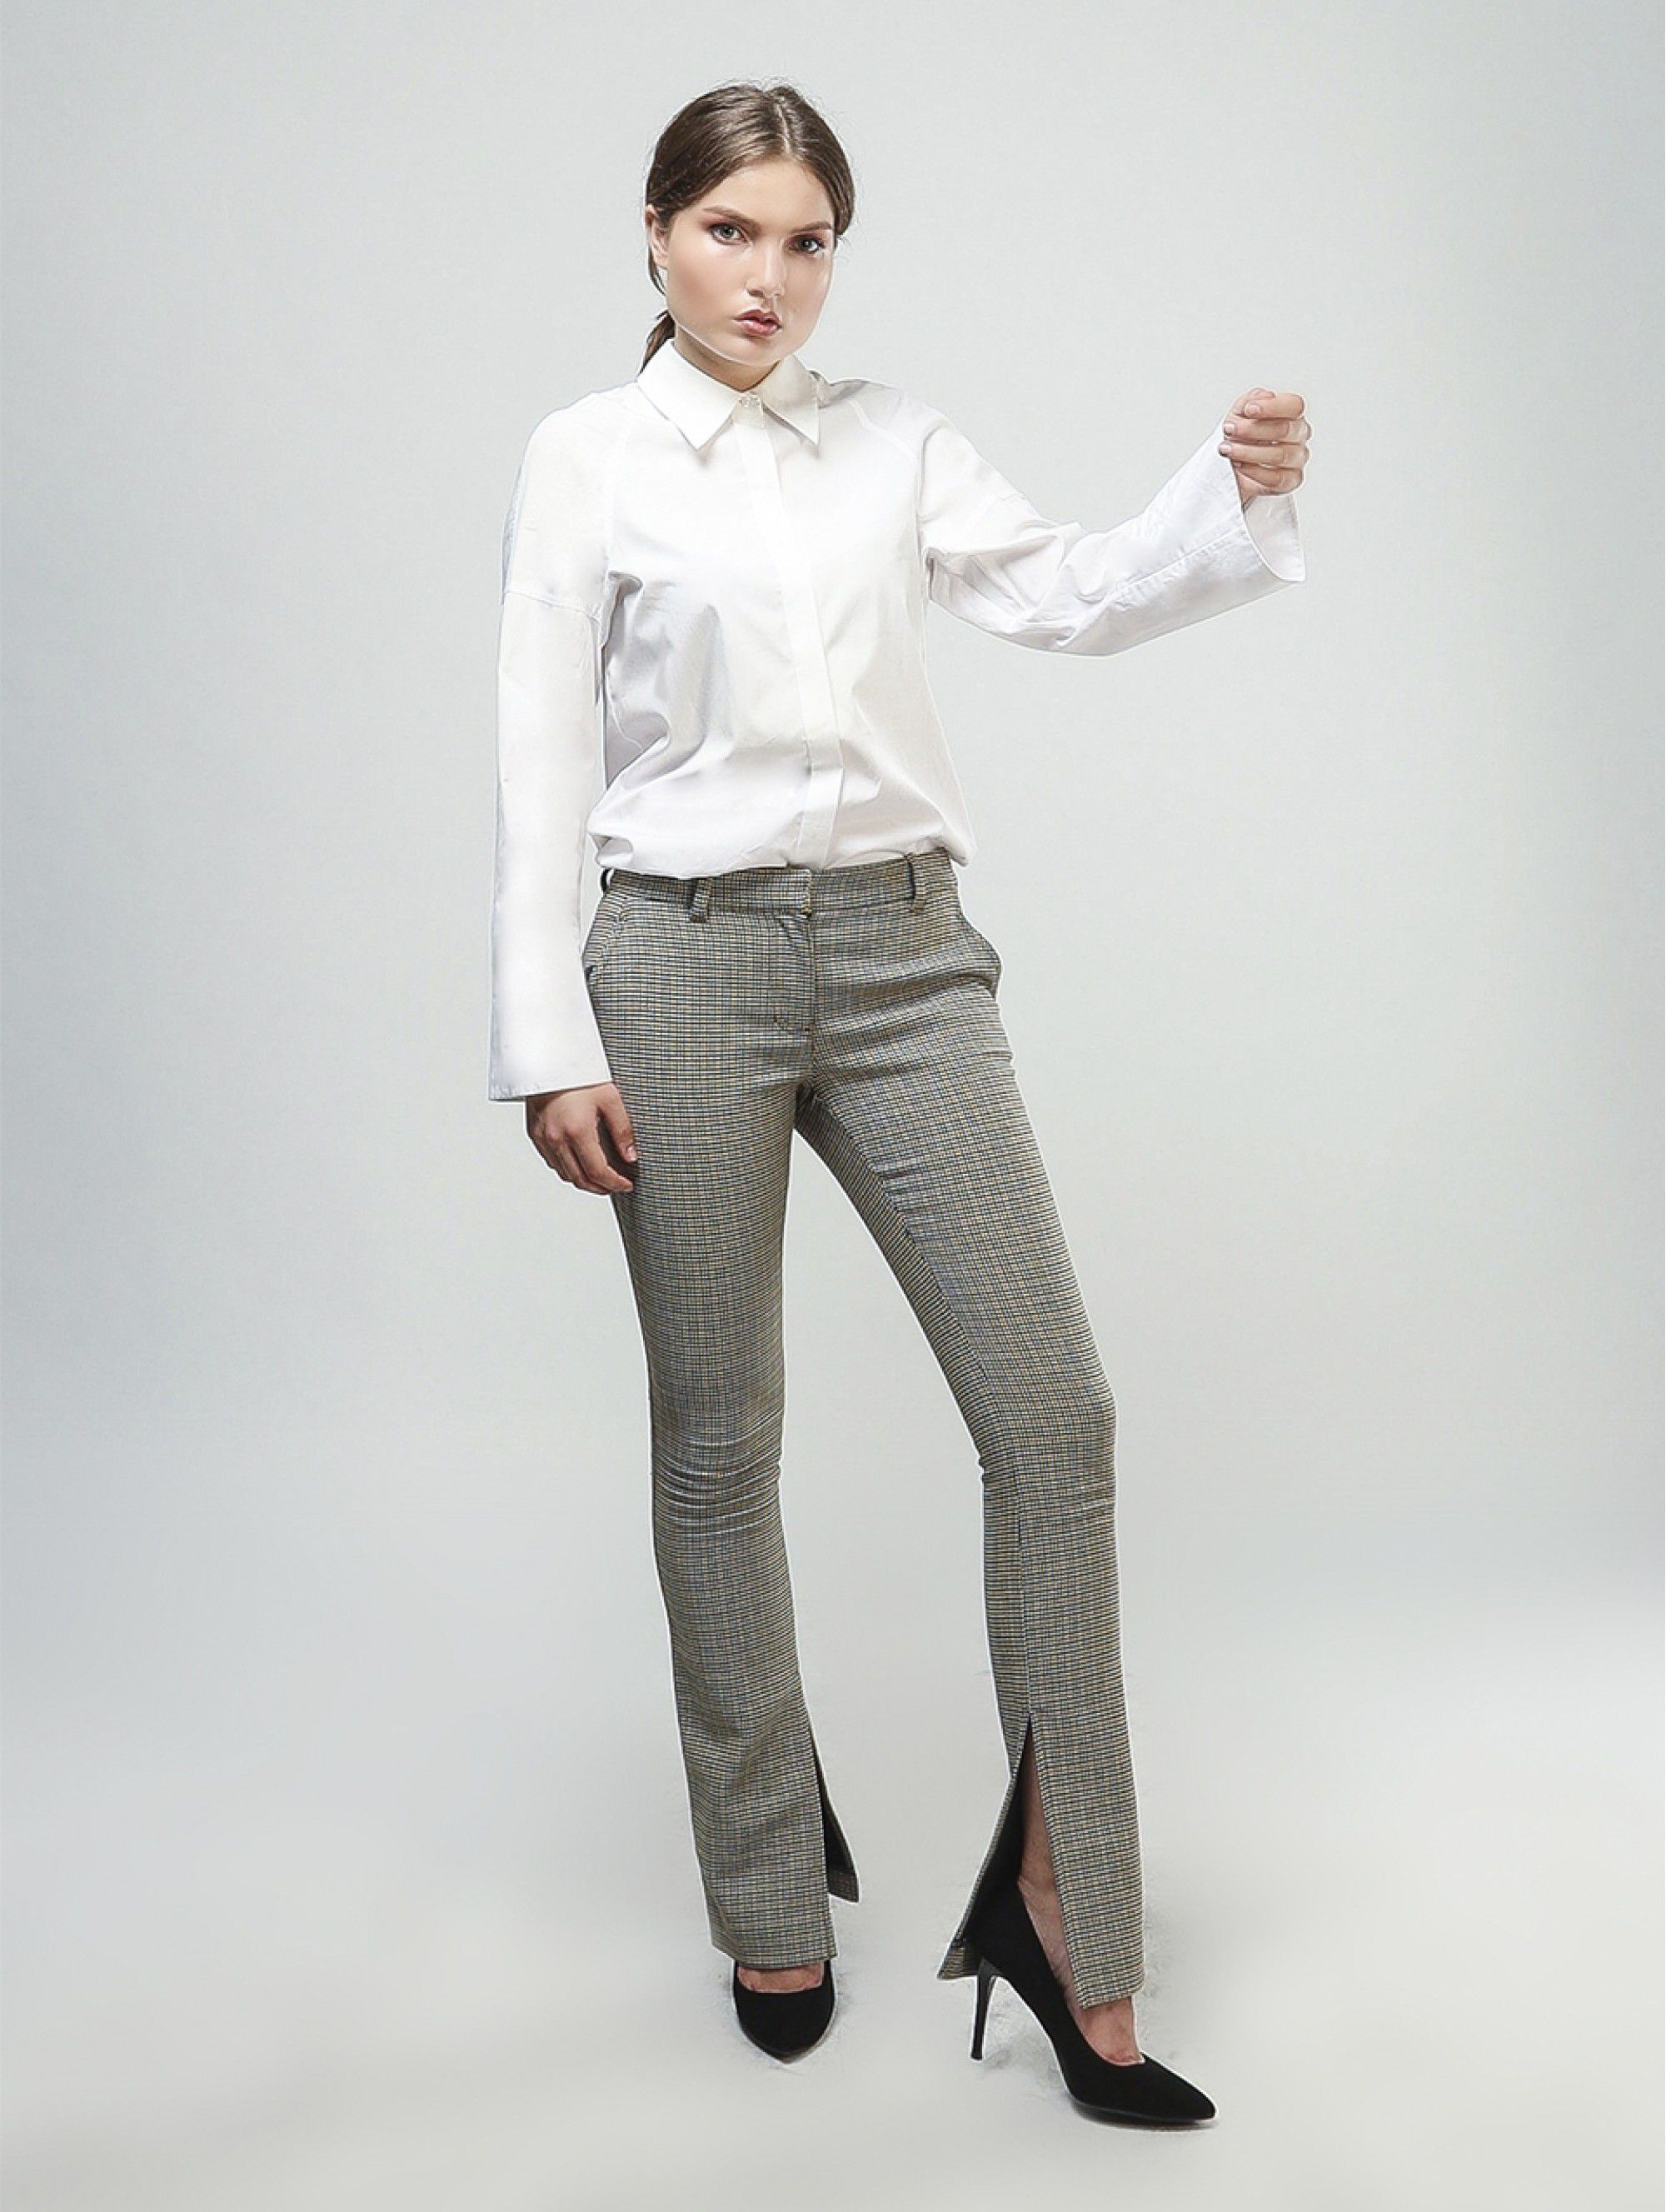 A.L.C. Shirt in White